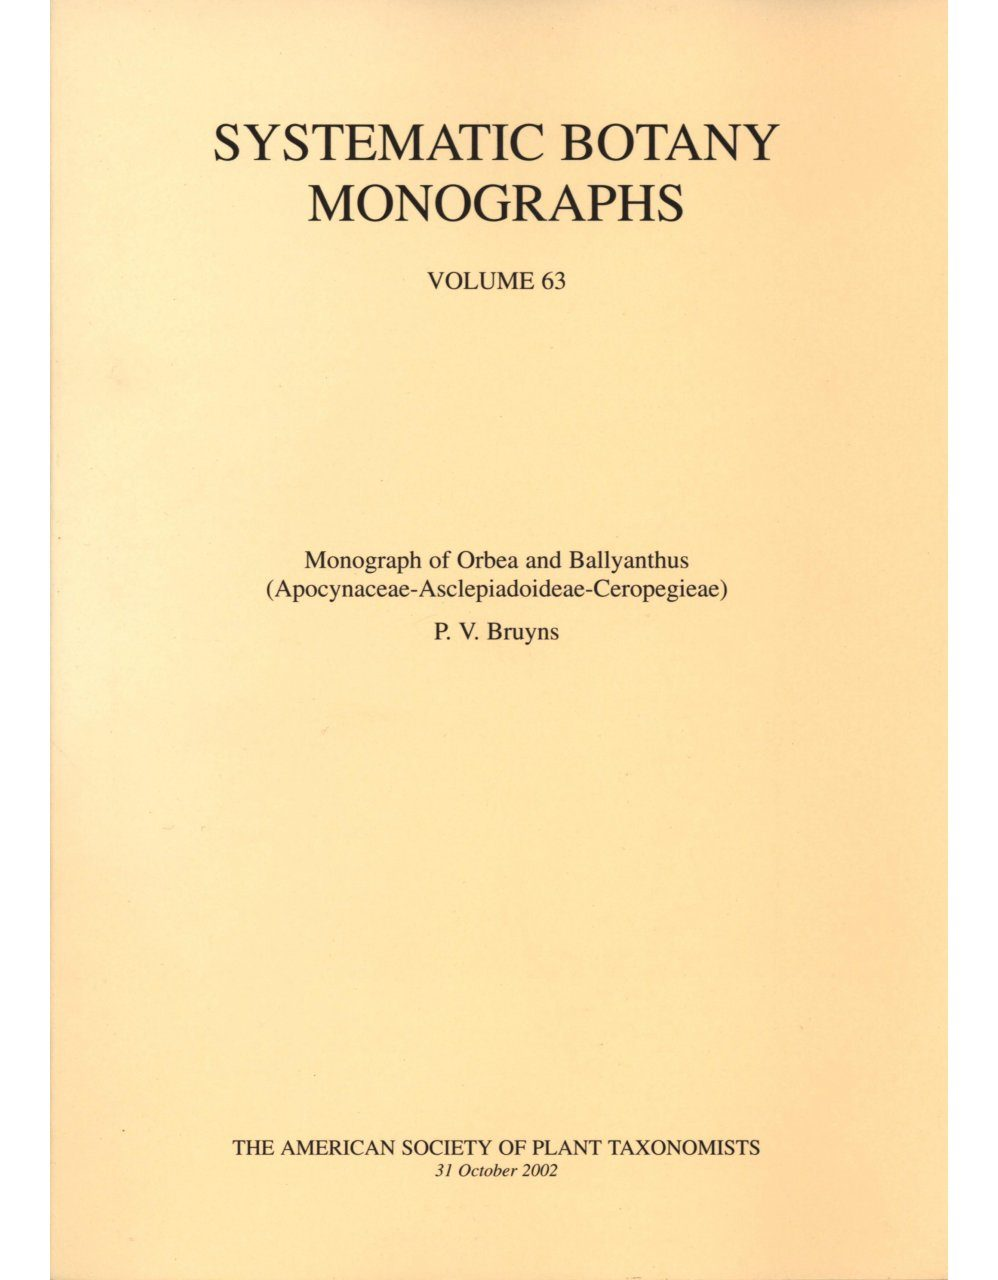 Monograph of Orbea and Ballyanthus